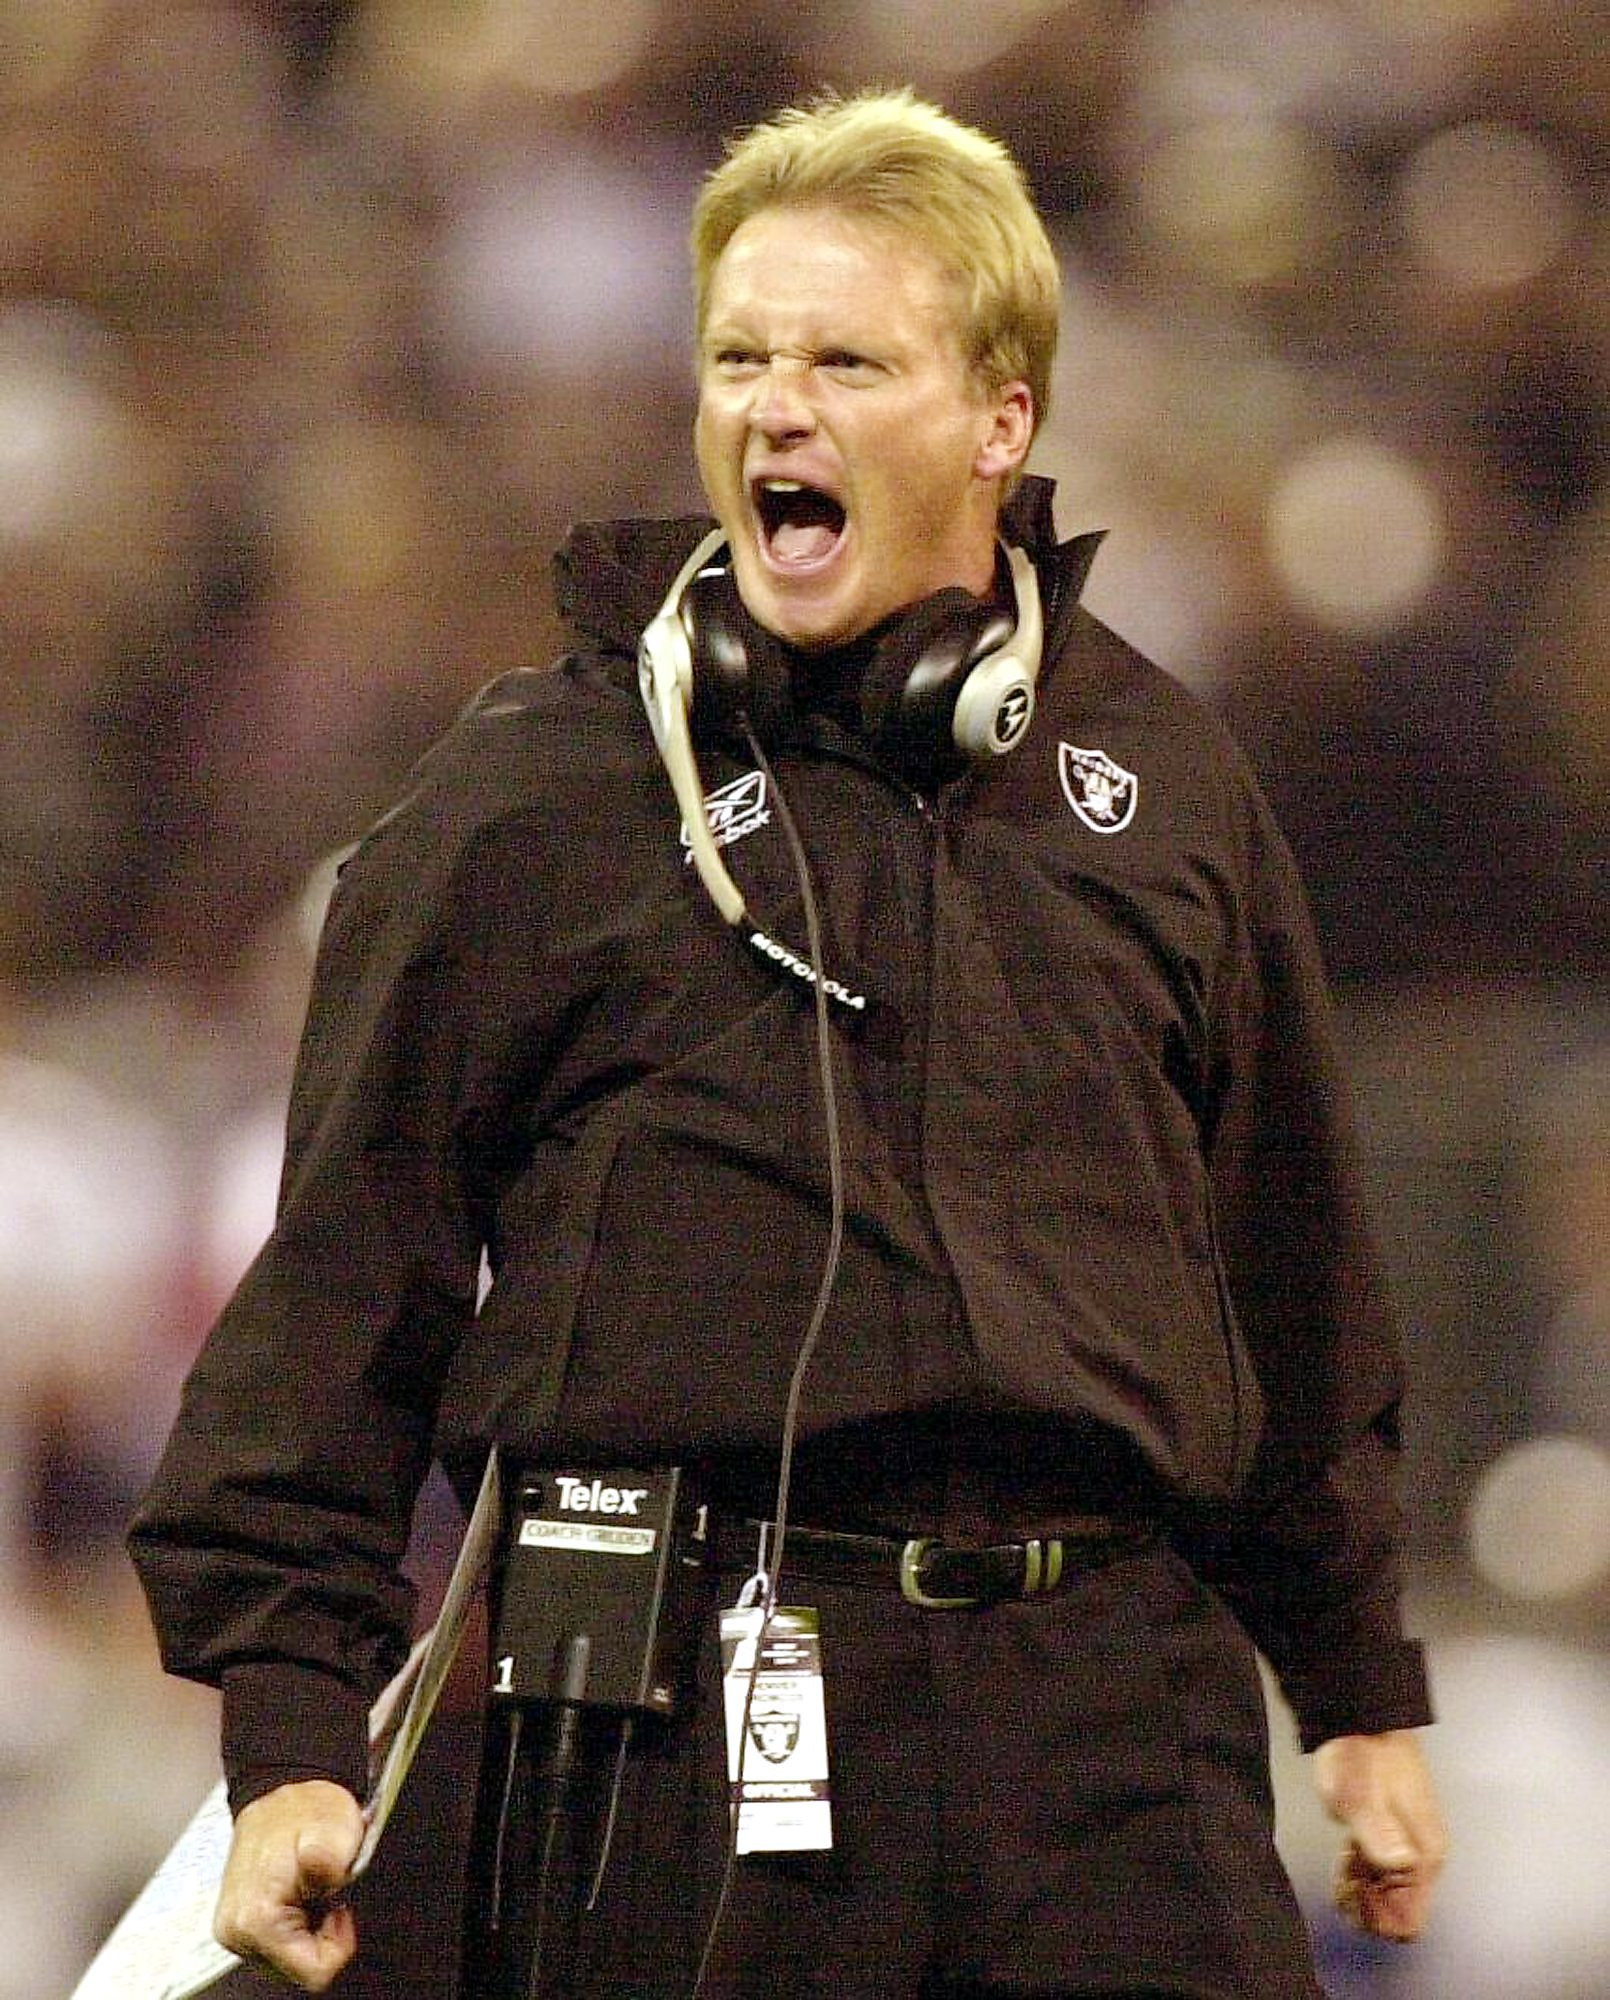 Sf Chronicle Classifieds: Return To Coaching Grind May Be Tough For Gruden